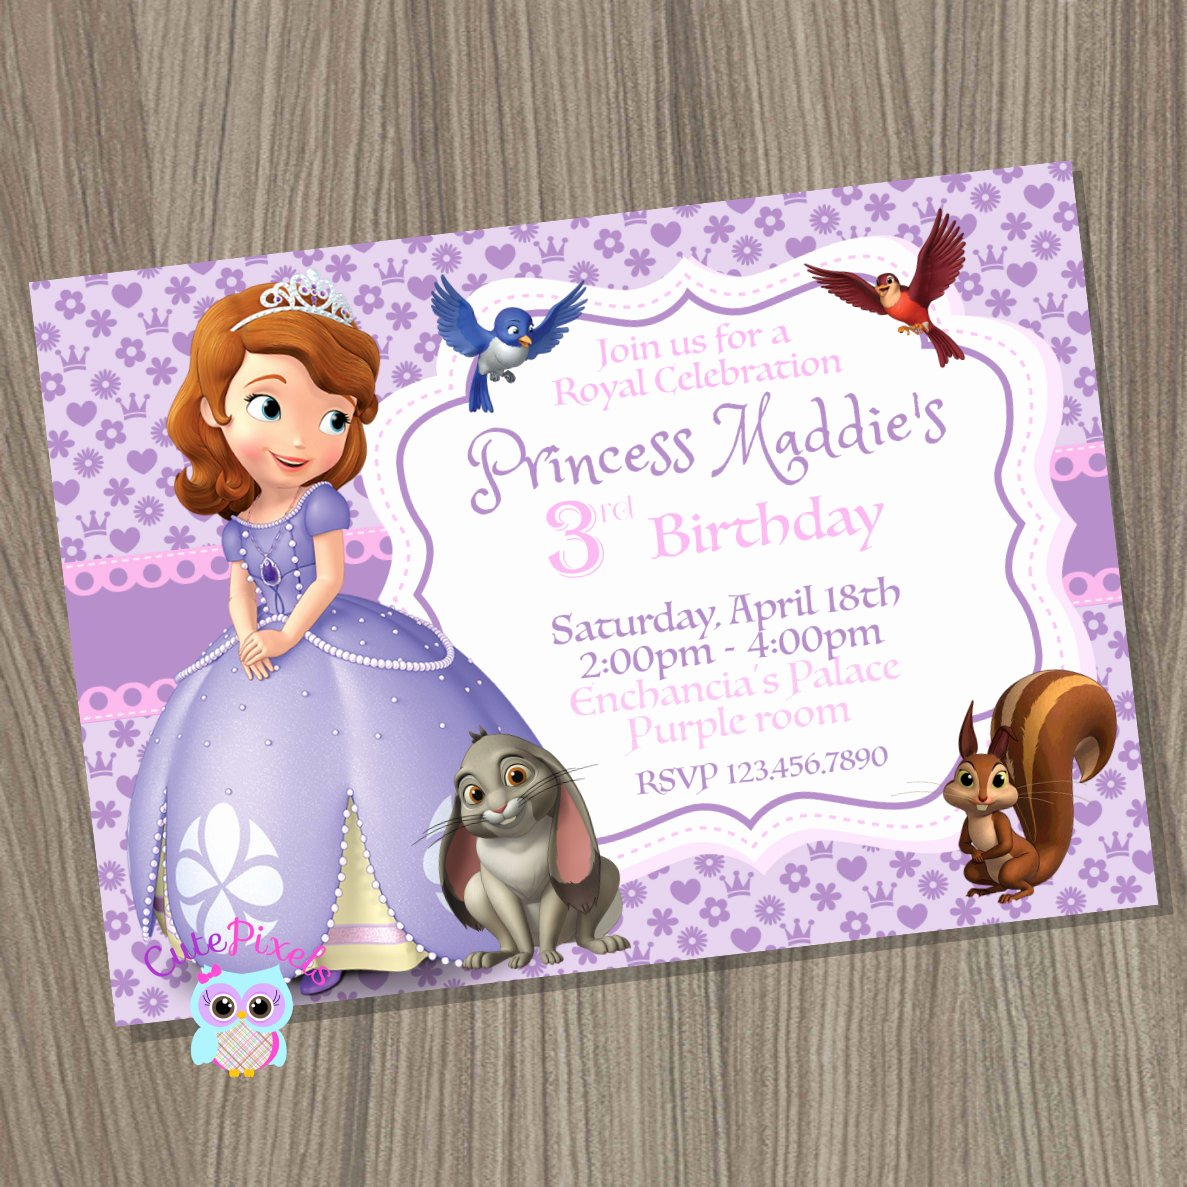 Sofia the First Invitation Templates Unique sofia the First Invitation Princess sofia Invitation